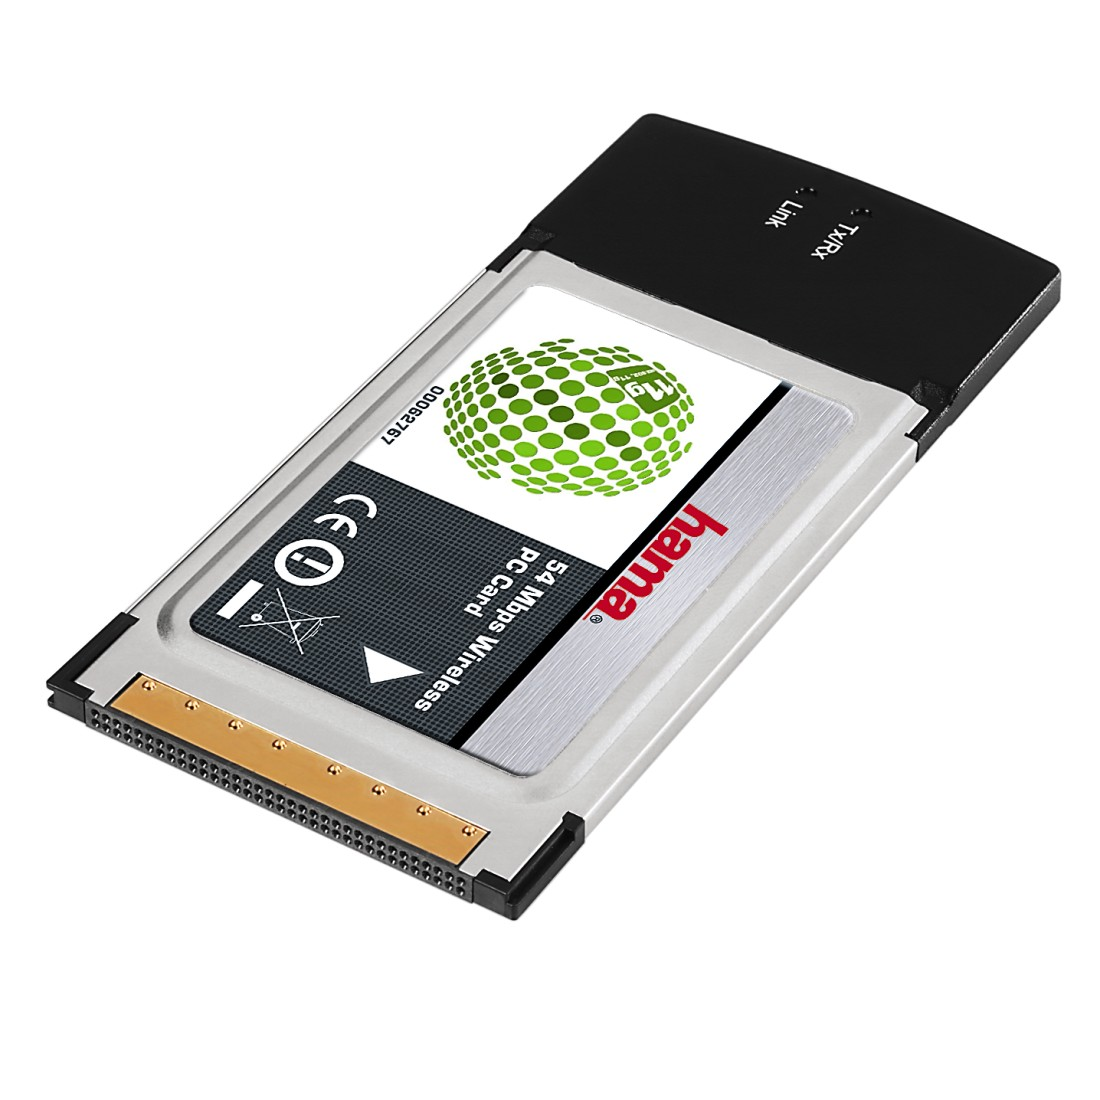 abx High-Res Image - Hama, Wireless LAN PC Card 54 Mbps